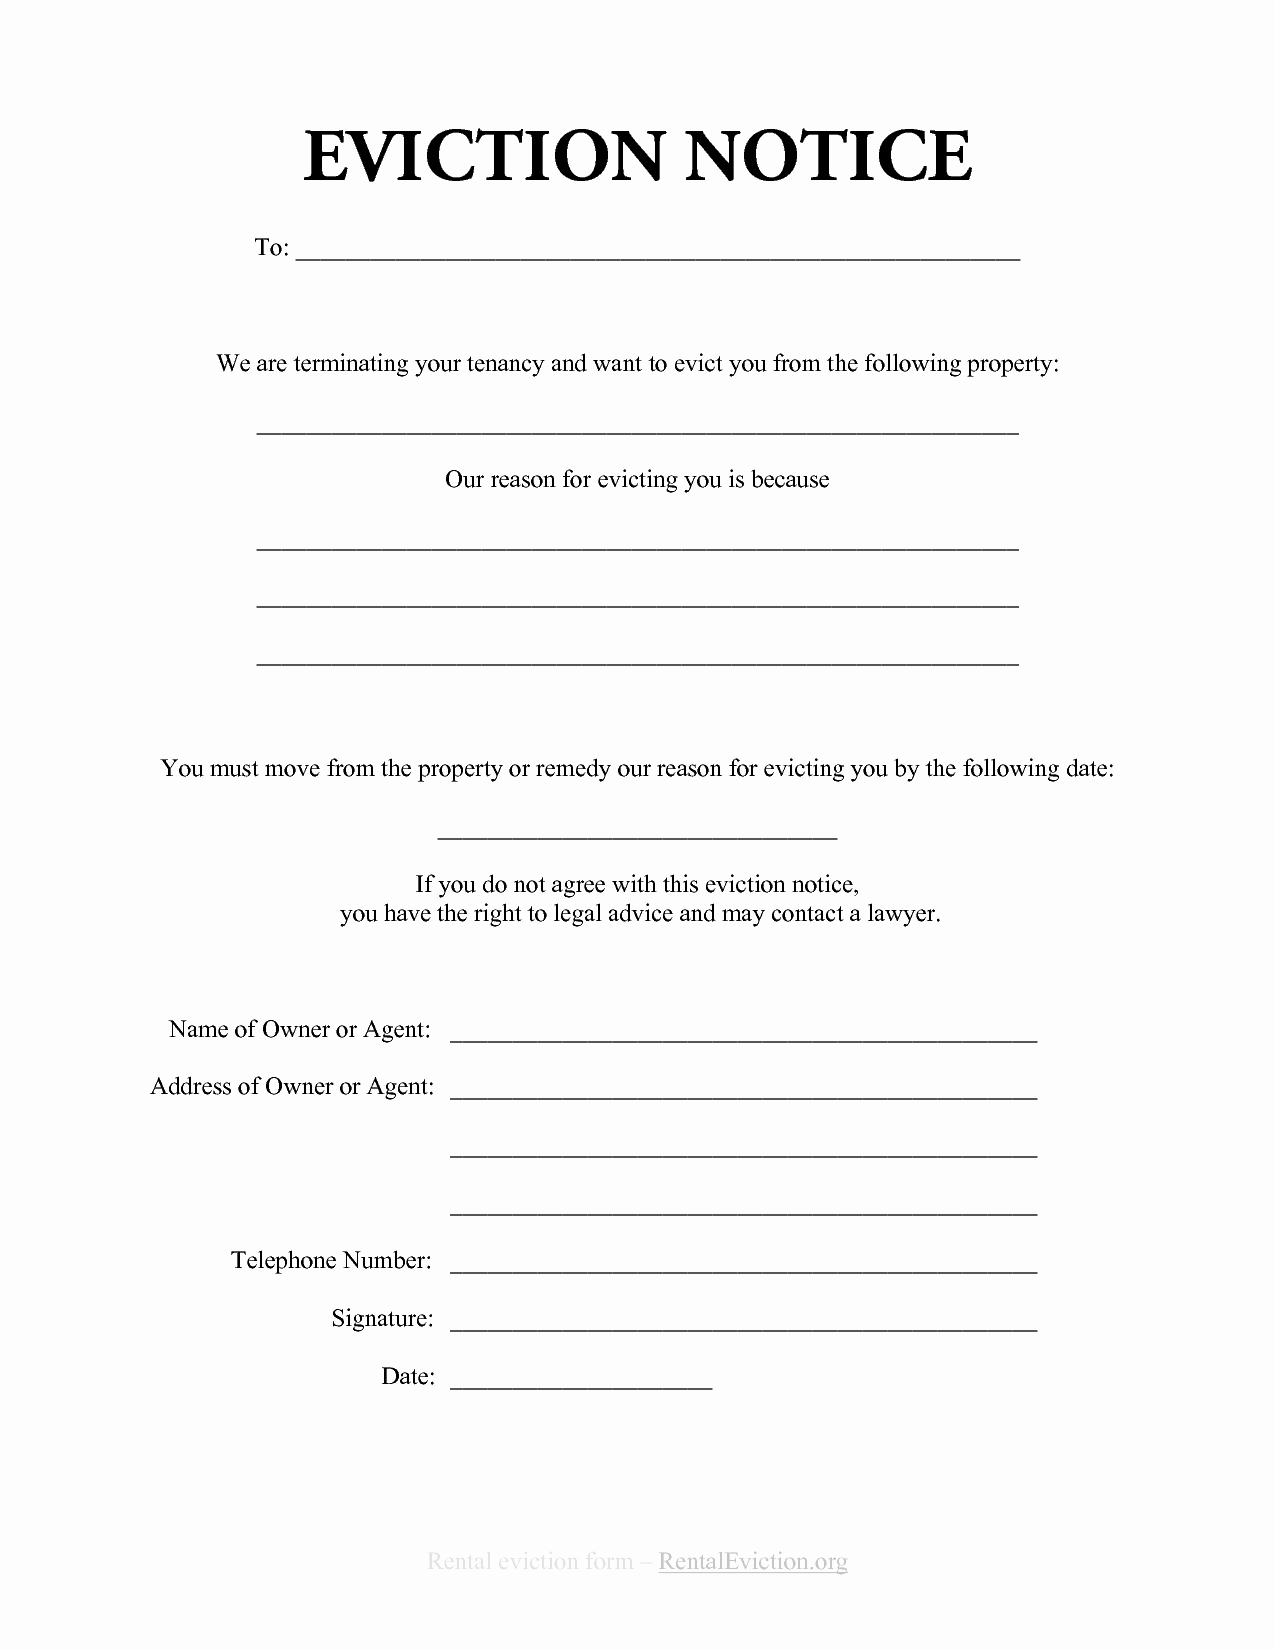 Free Eviction Notice Templates Fresh Free Print Out Eviction Notices